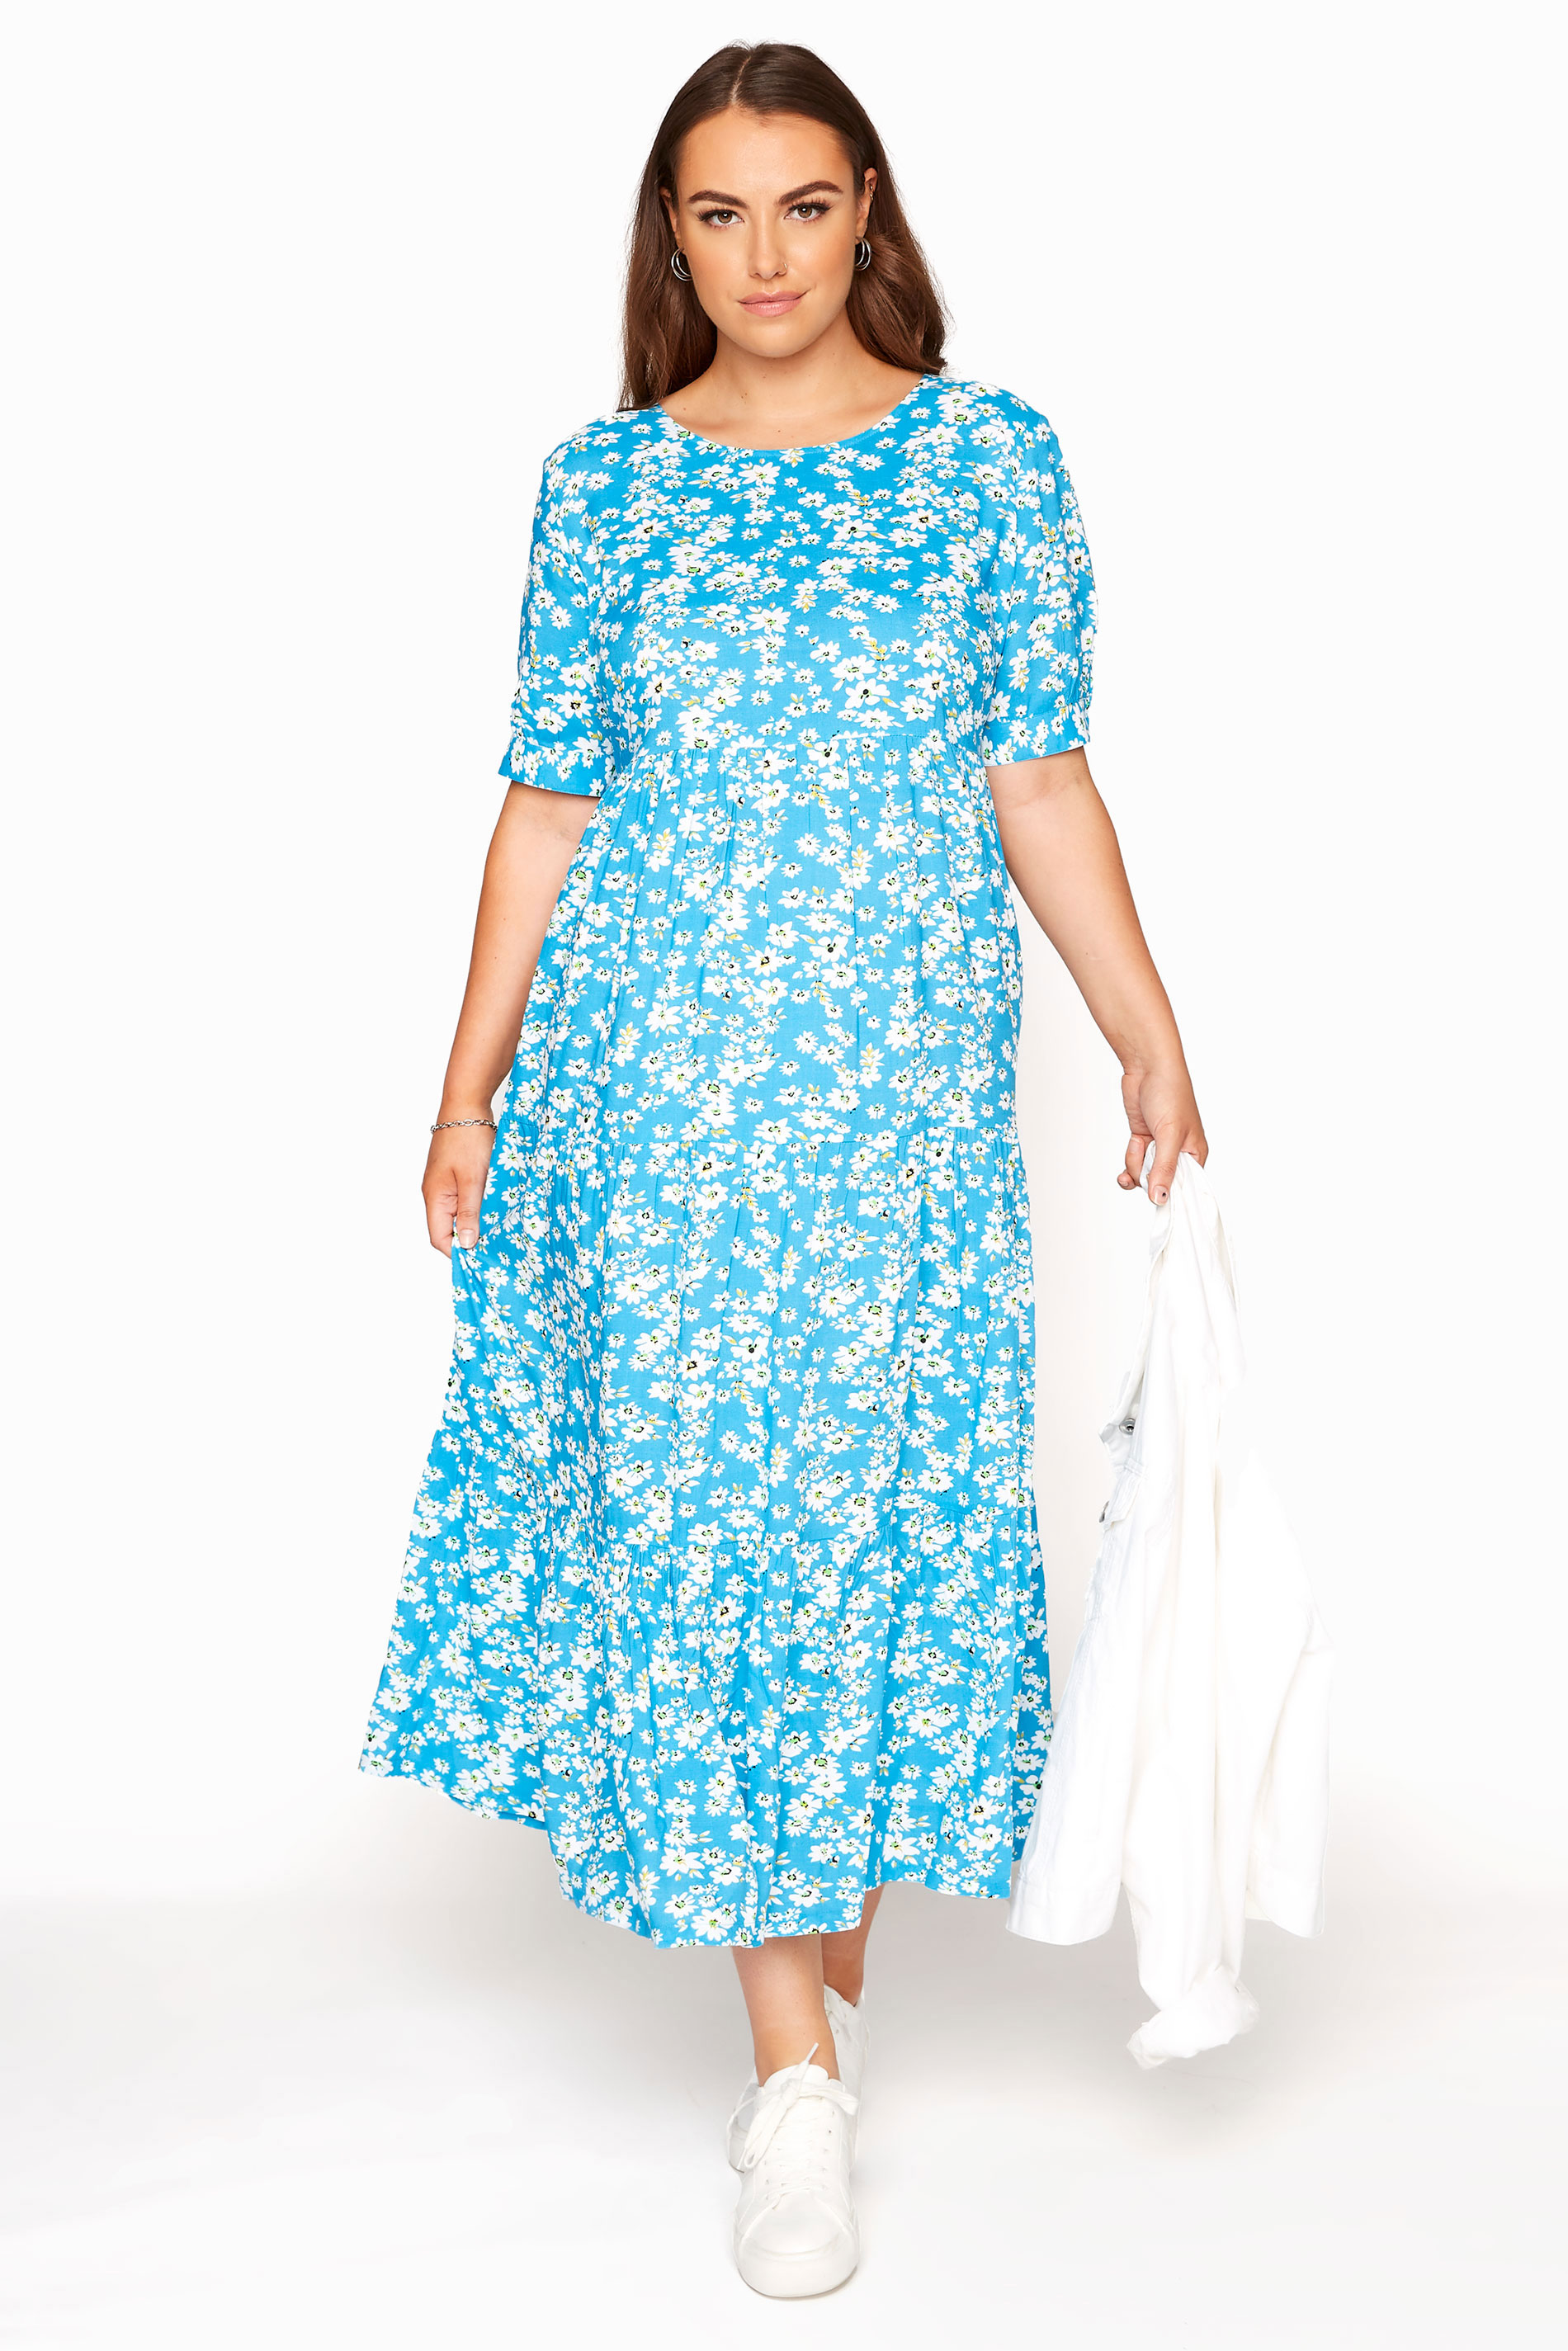 LIMITED COLLECTION Blue Daisy Tiered Smock Dress_A.jpg